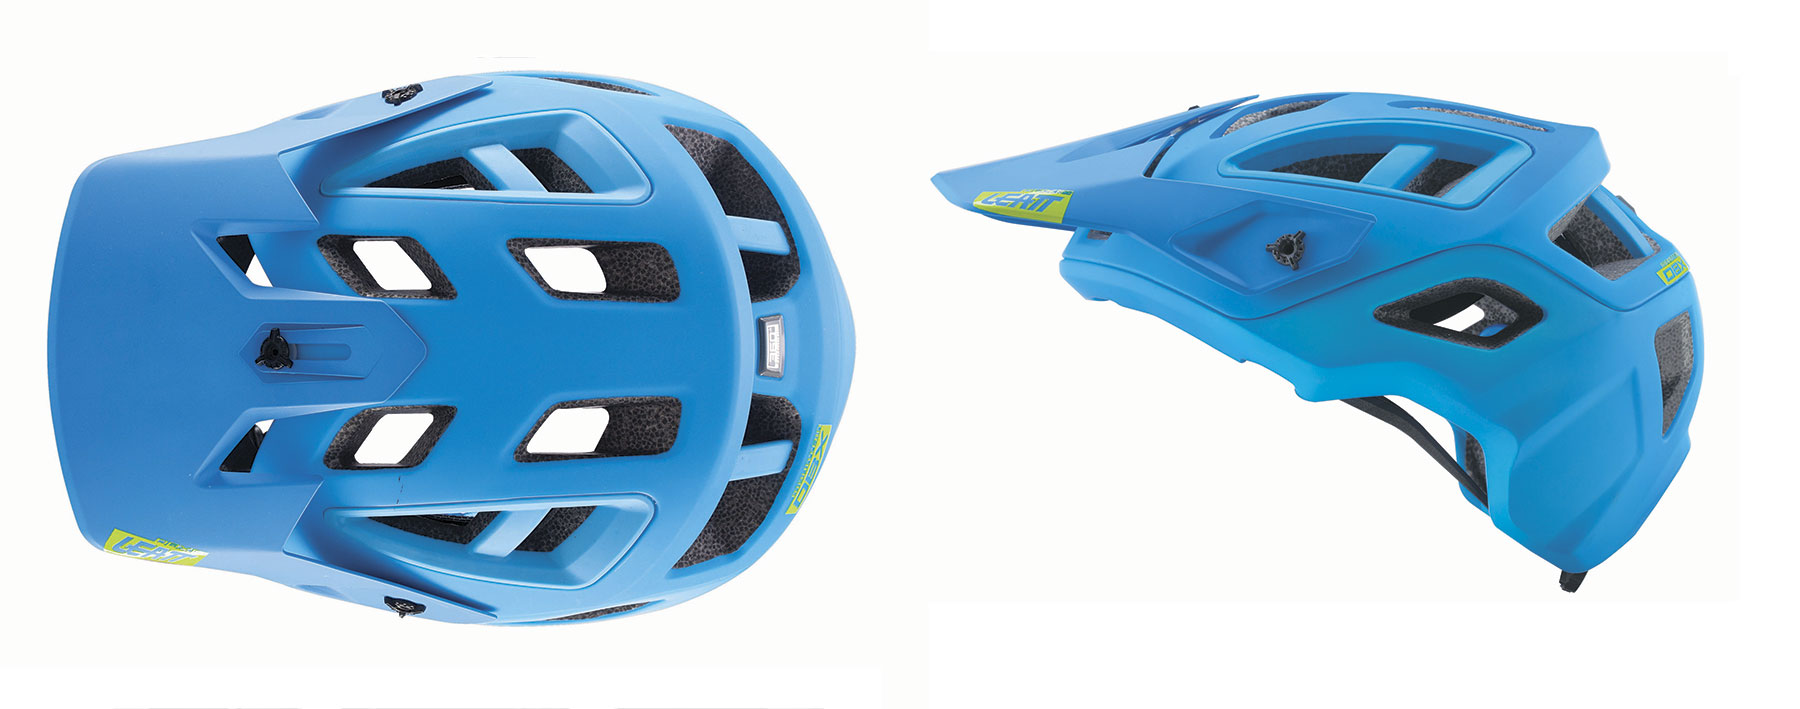 Casco  casco Leatt DBX 3.0 AllMountain - Azul